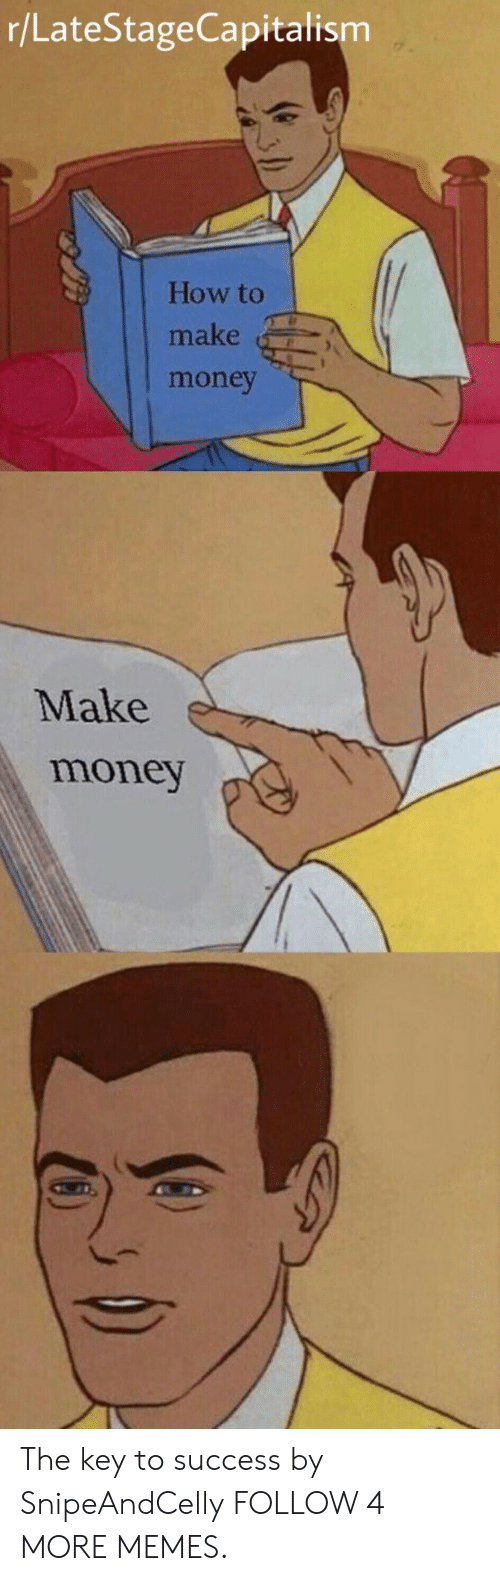 Dank, Memes, and Money: r/LateStageCapitalism  How to  make  money  Make  money The key to success by SnipeAndCelly FOLLOW 4 MORE MEMES.